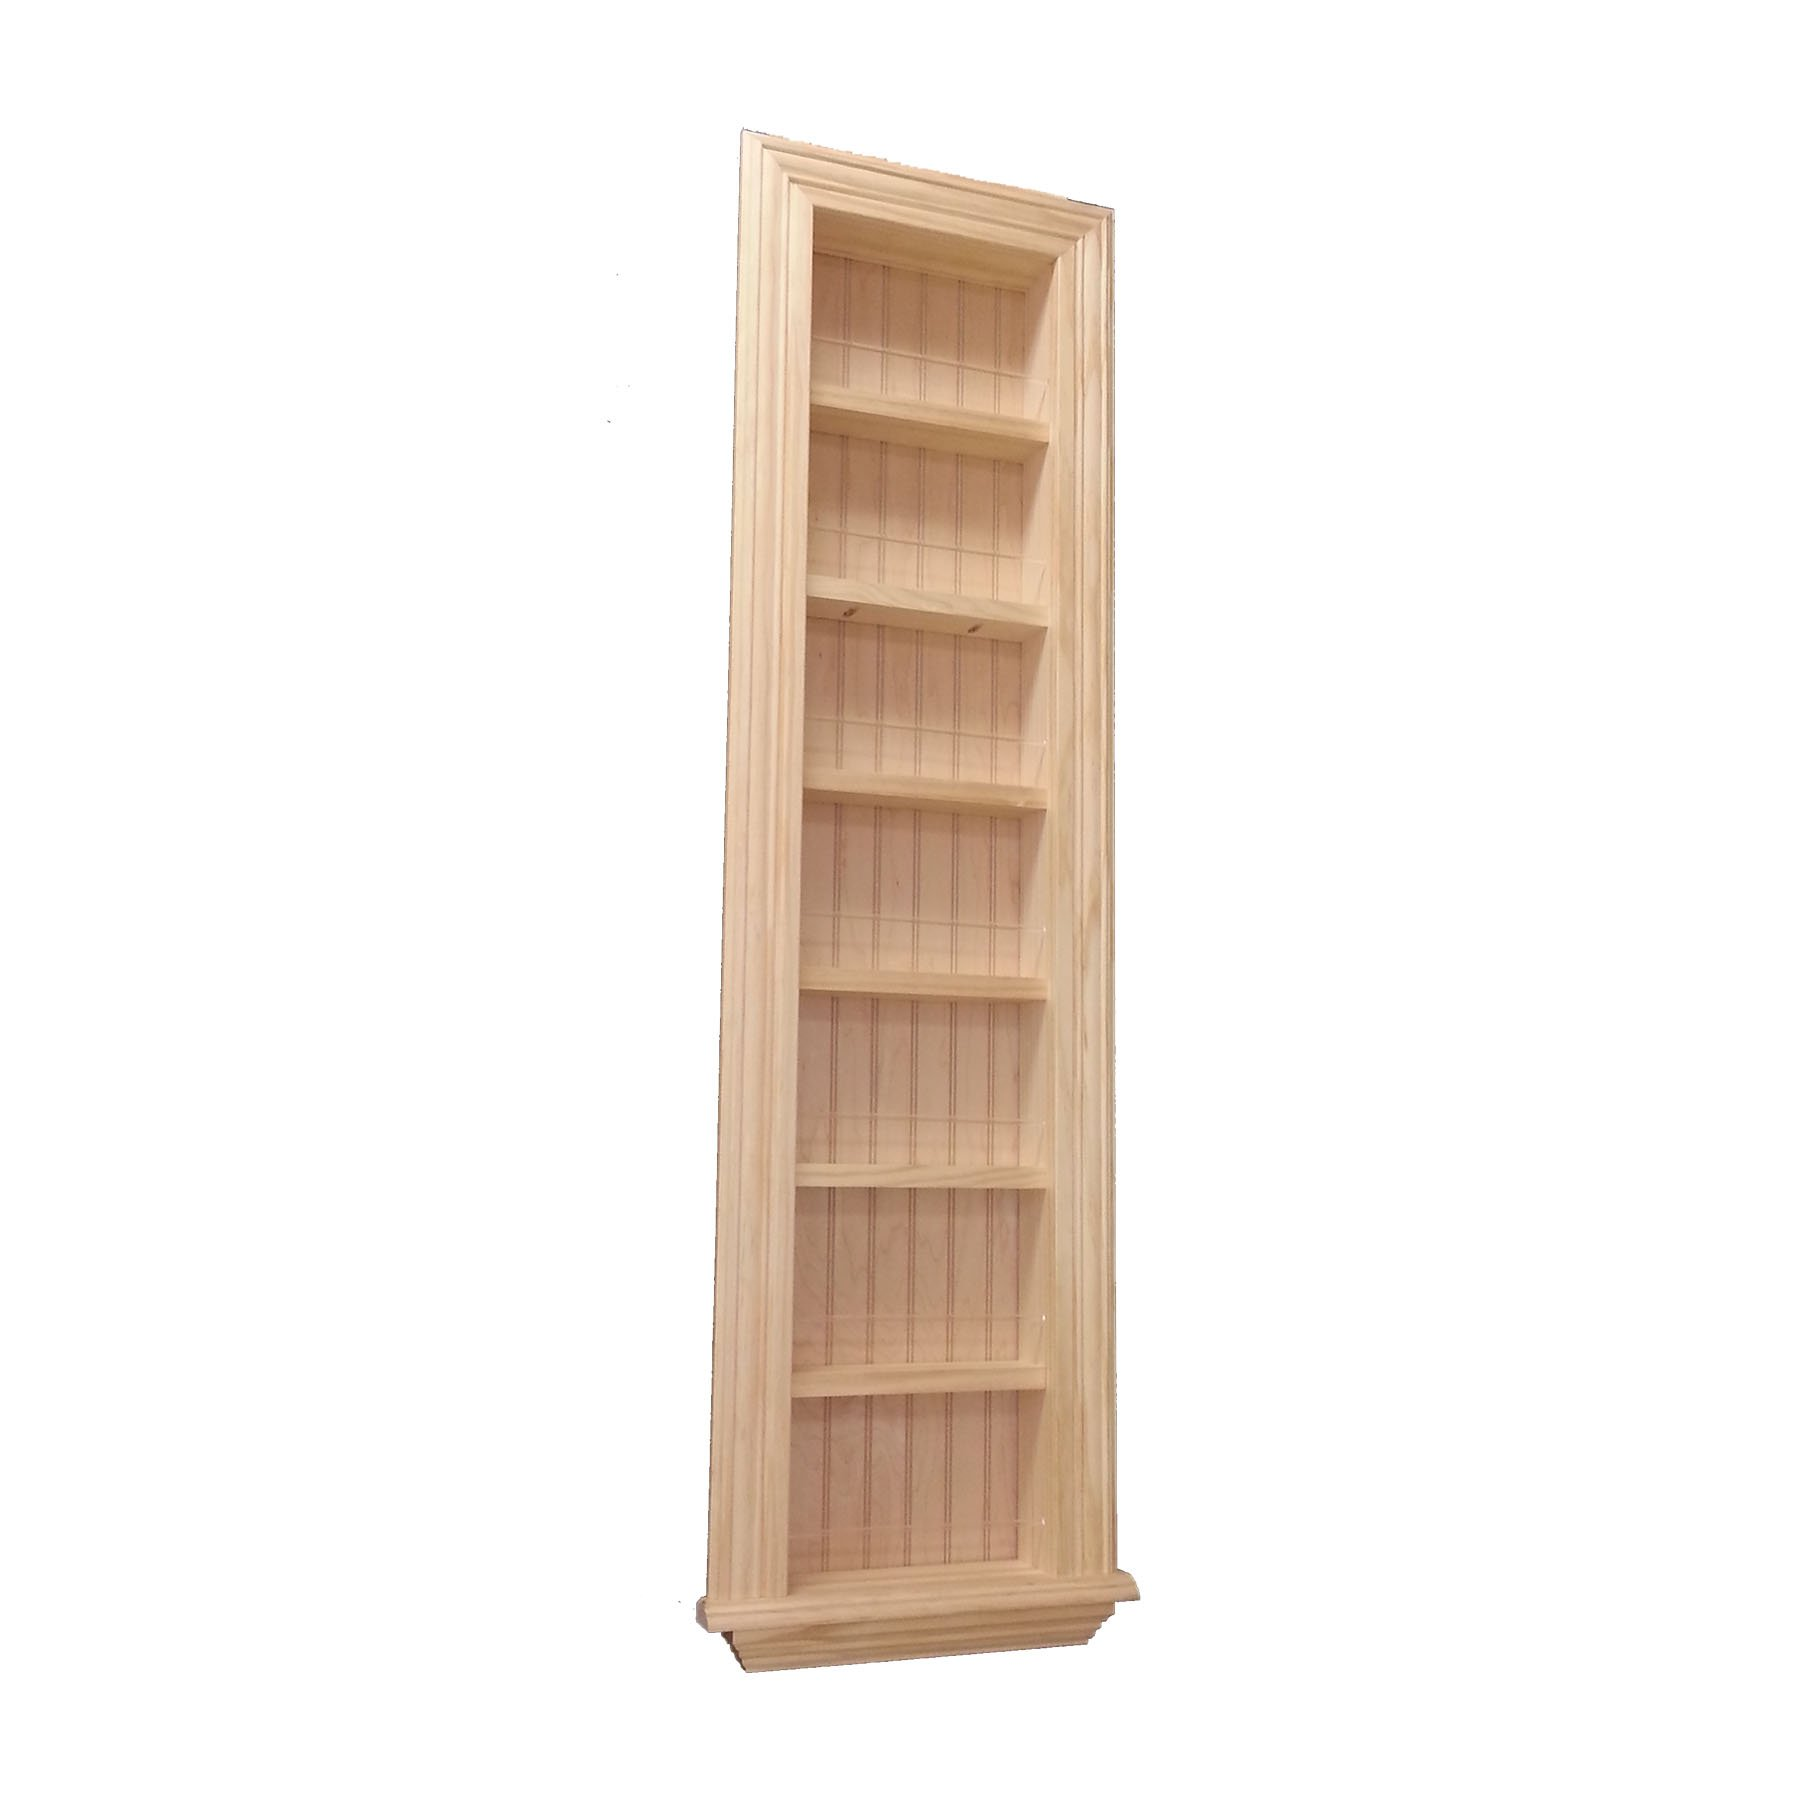 Wood Cabinets Direct 48 Inch Kane Traditional Frame in The Wall Spice Rack, 18 X 3.5 by Wood Cabinets Direct